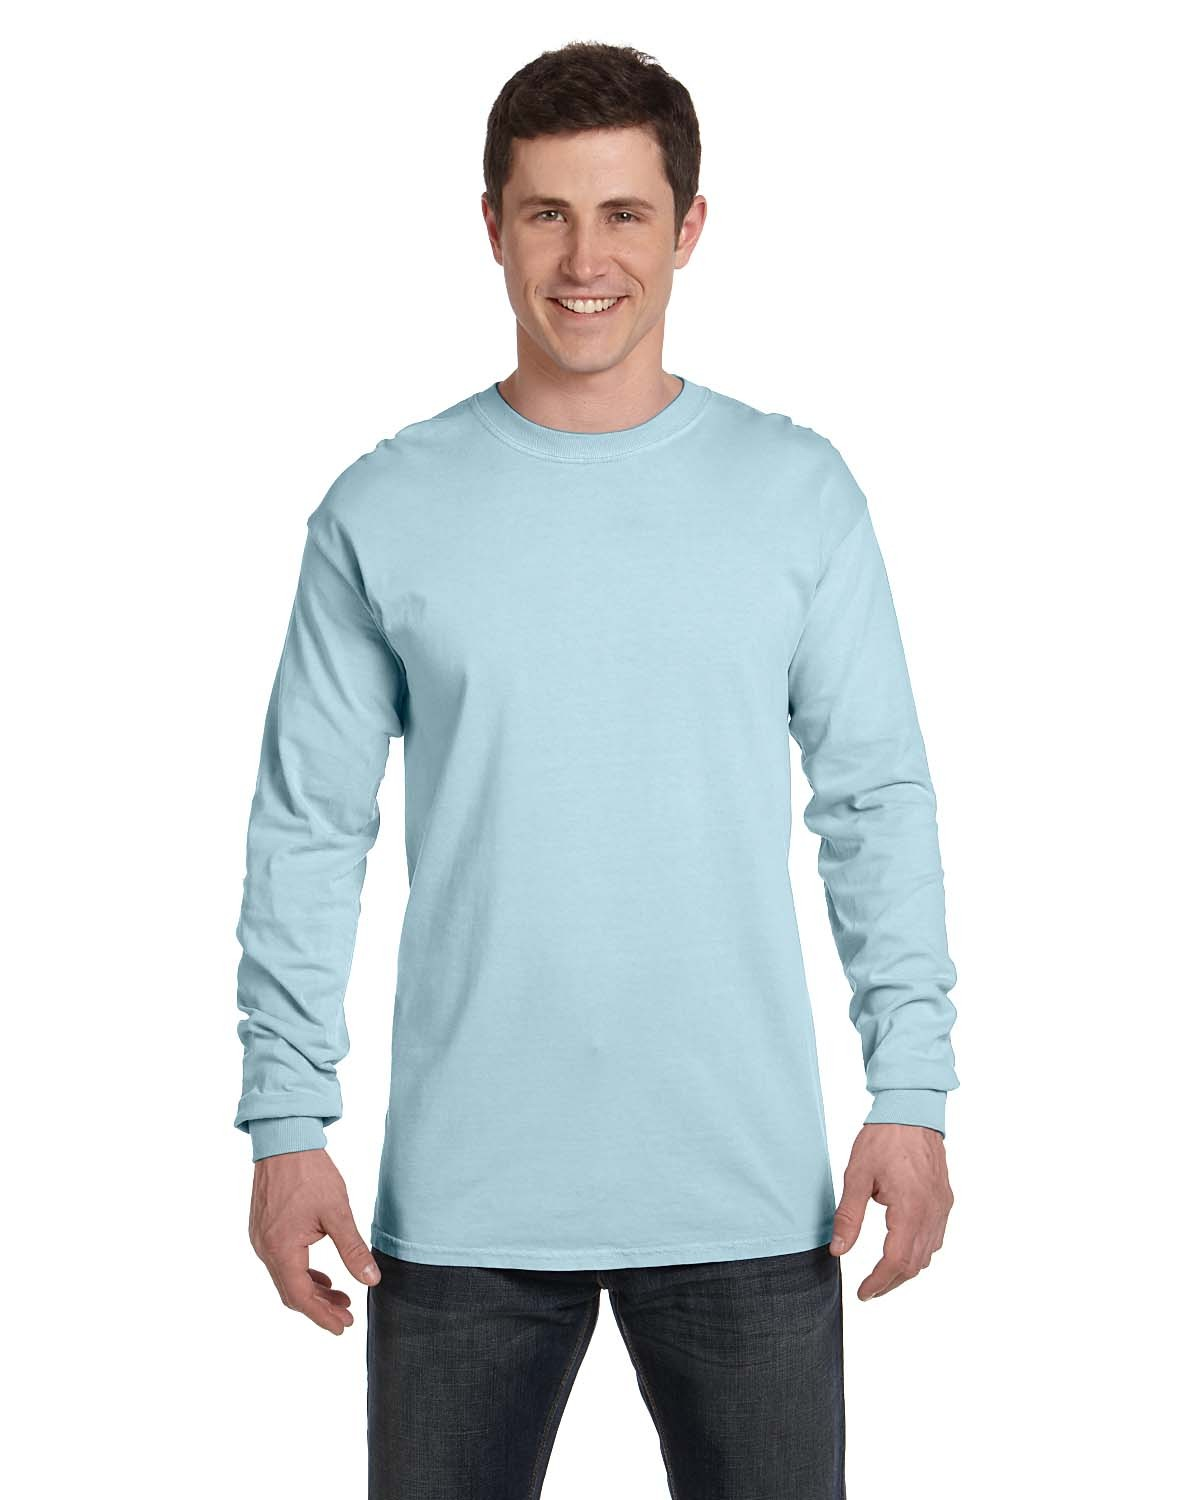 C6014 Comfort Colors CHAMBRAY